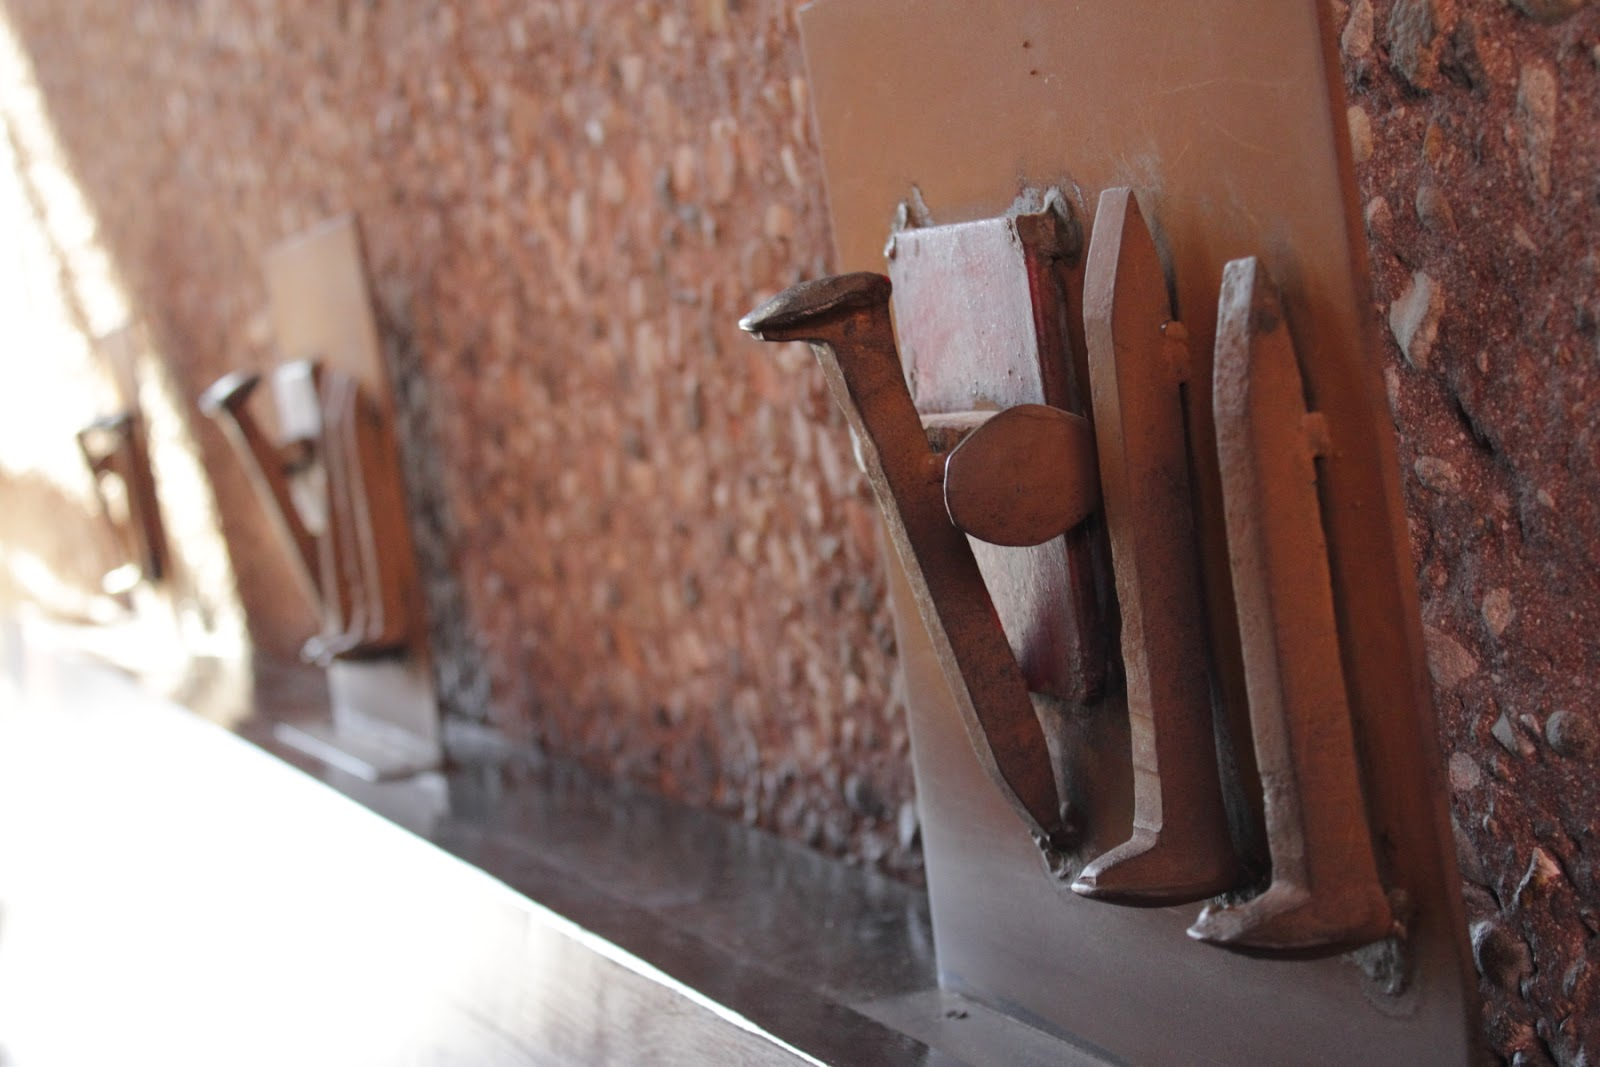 Chapel Of The Holy Cross - Sedona Row numbers in Roman Numerals made from railroad spikes welded together